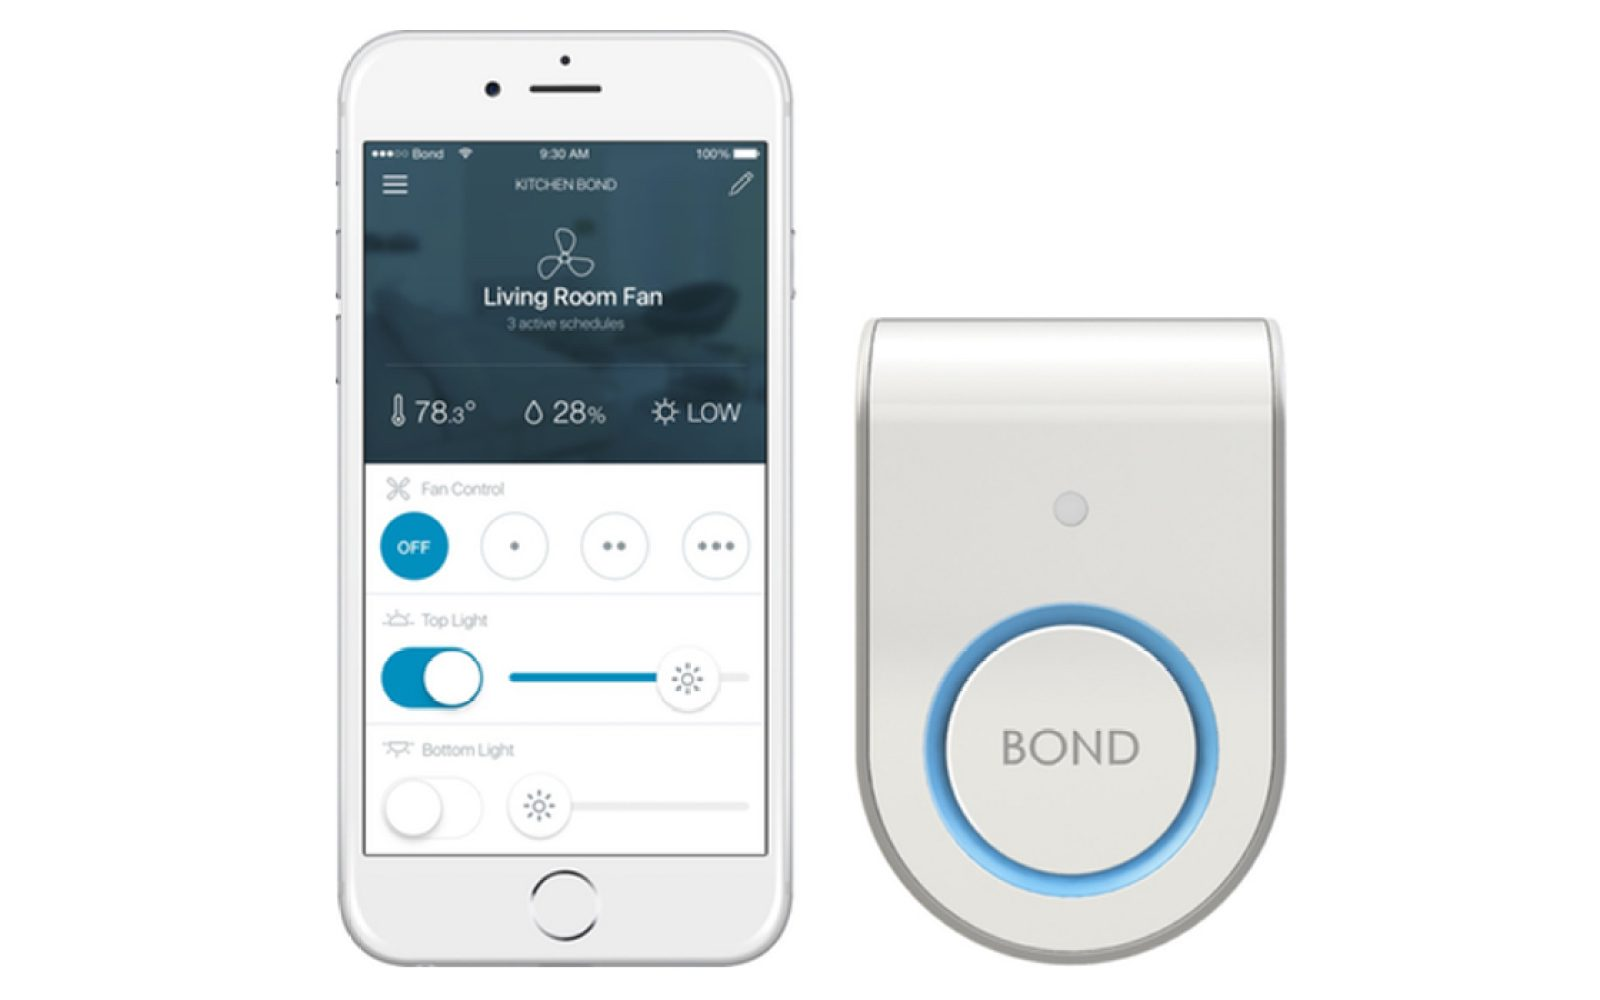 Bond integrates with SmartThings, Nest and iPhone to make any home a